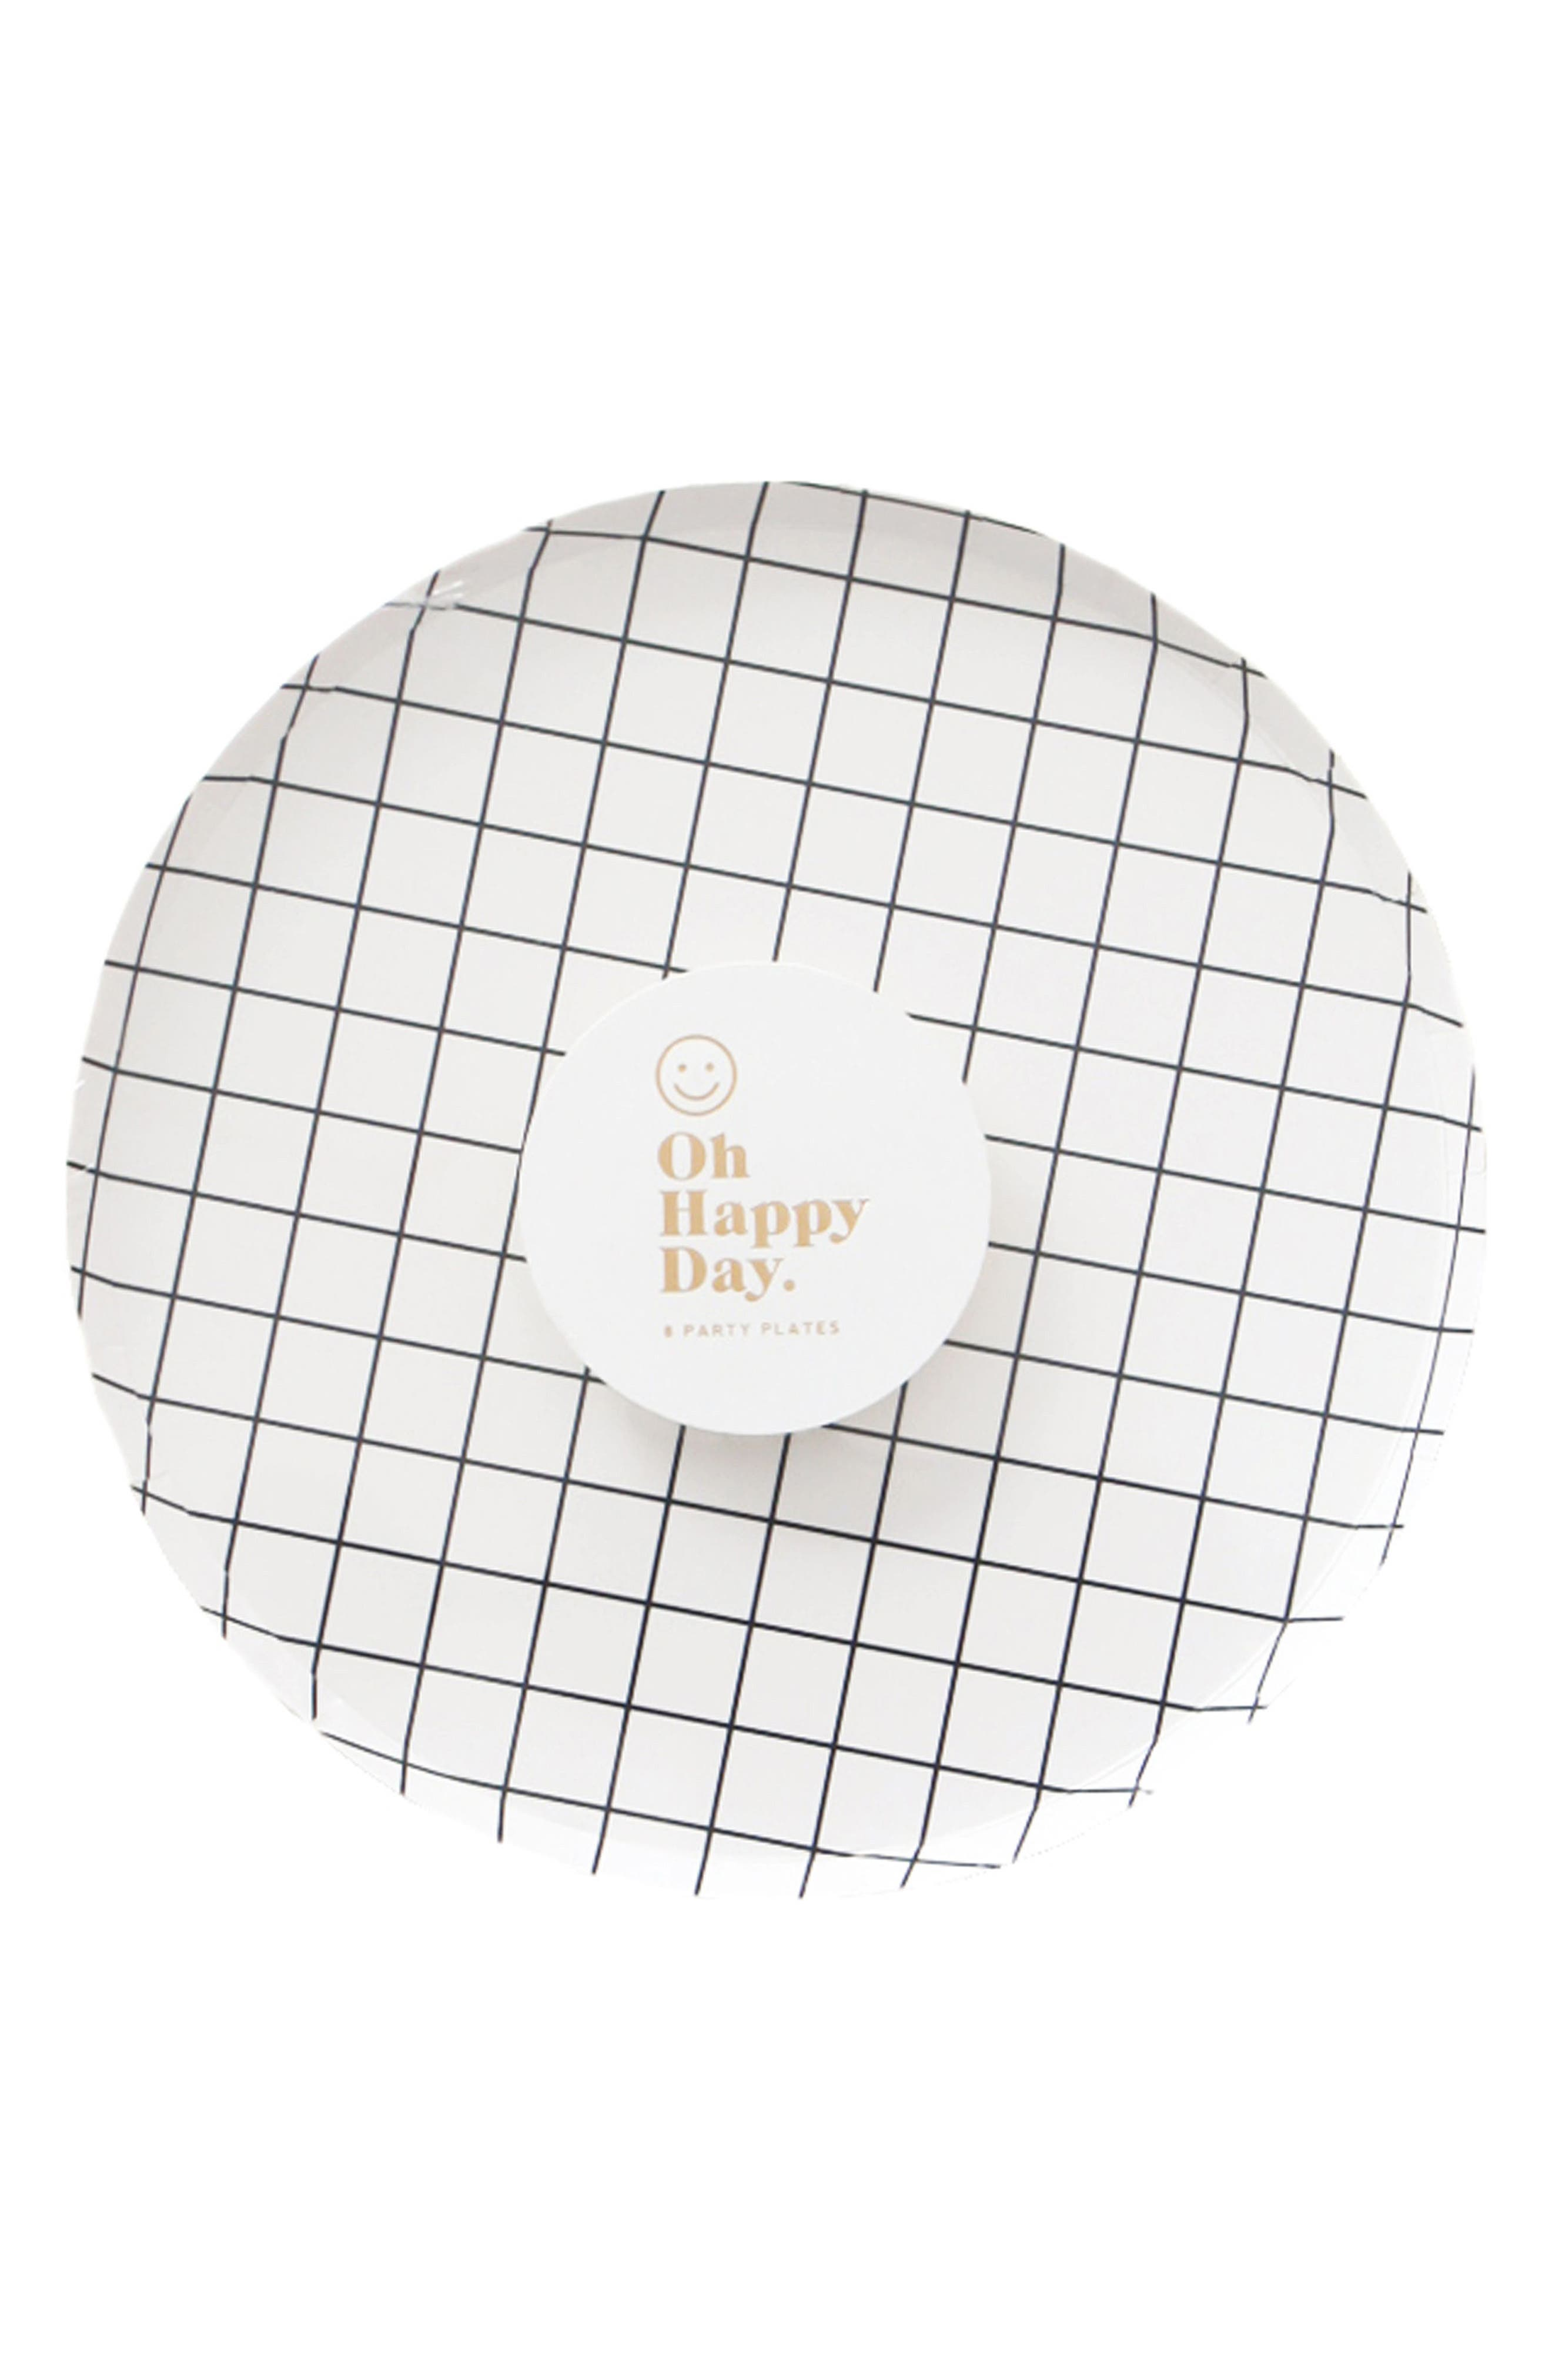 Oh Happy Day Set of 8 Black & White 7-Inch Paper Party Plates